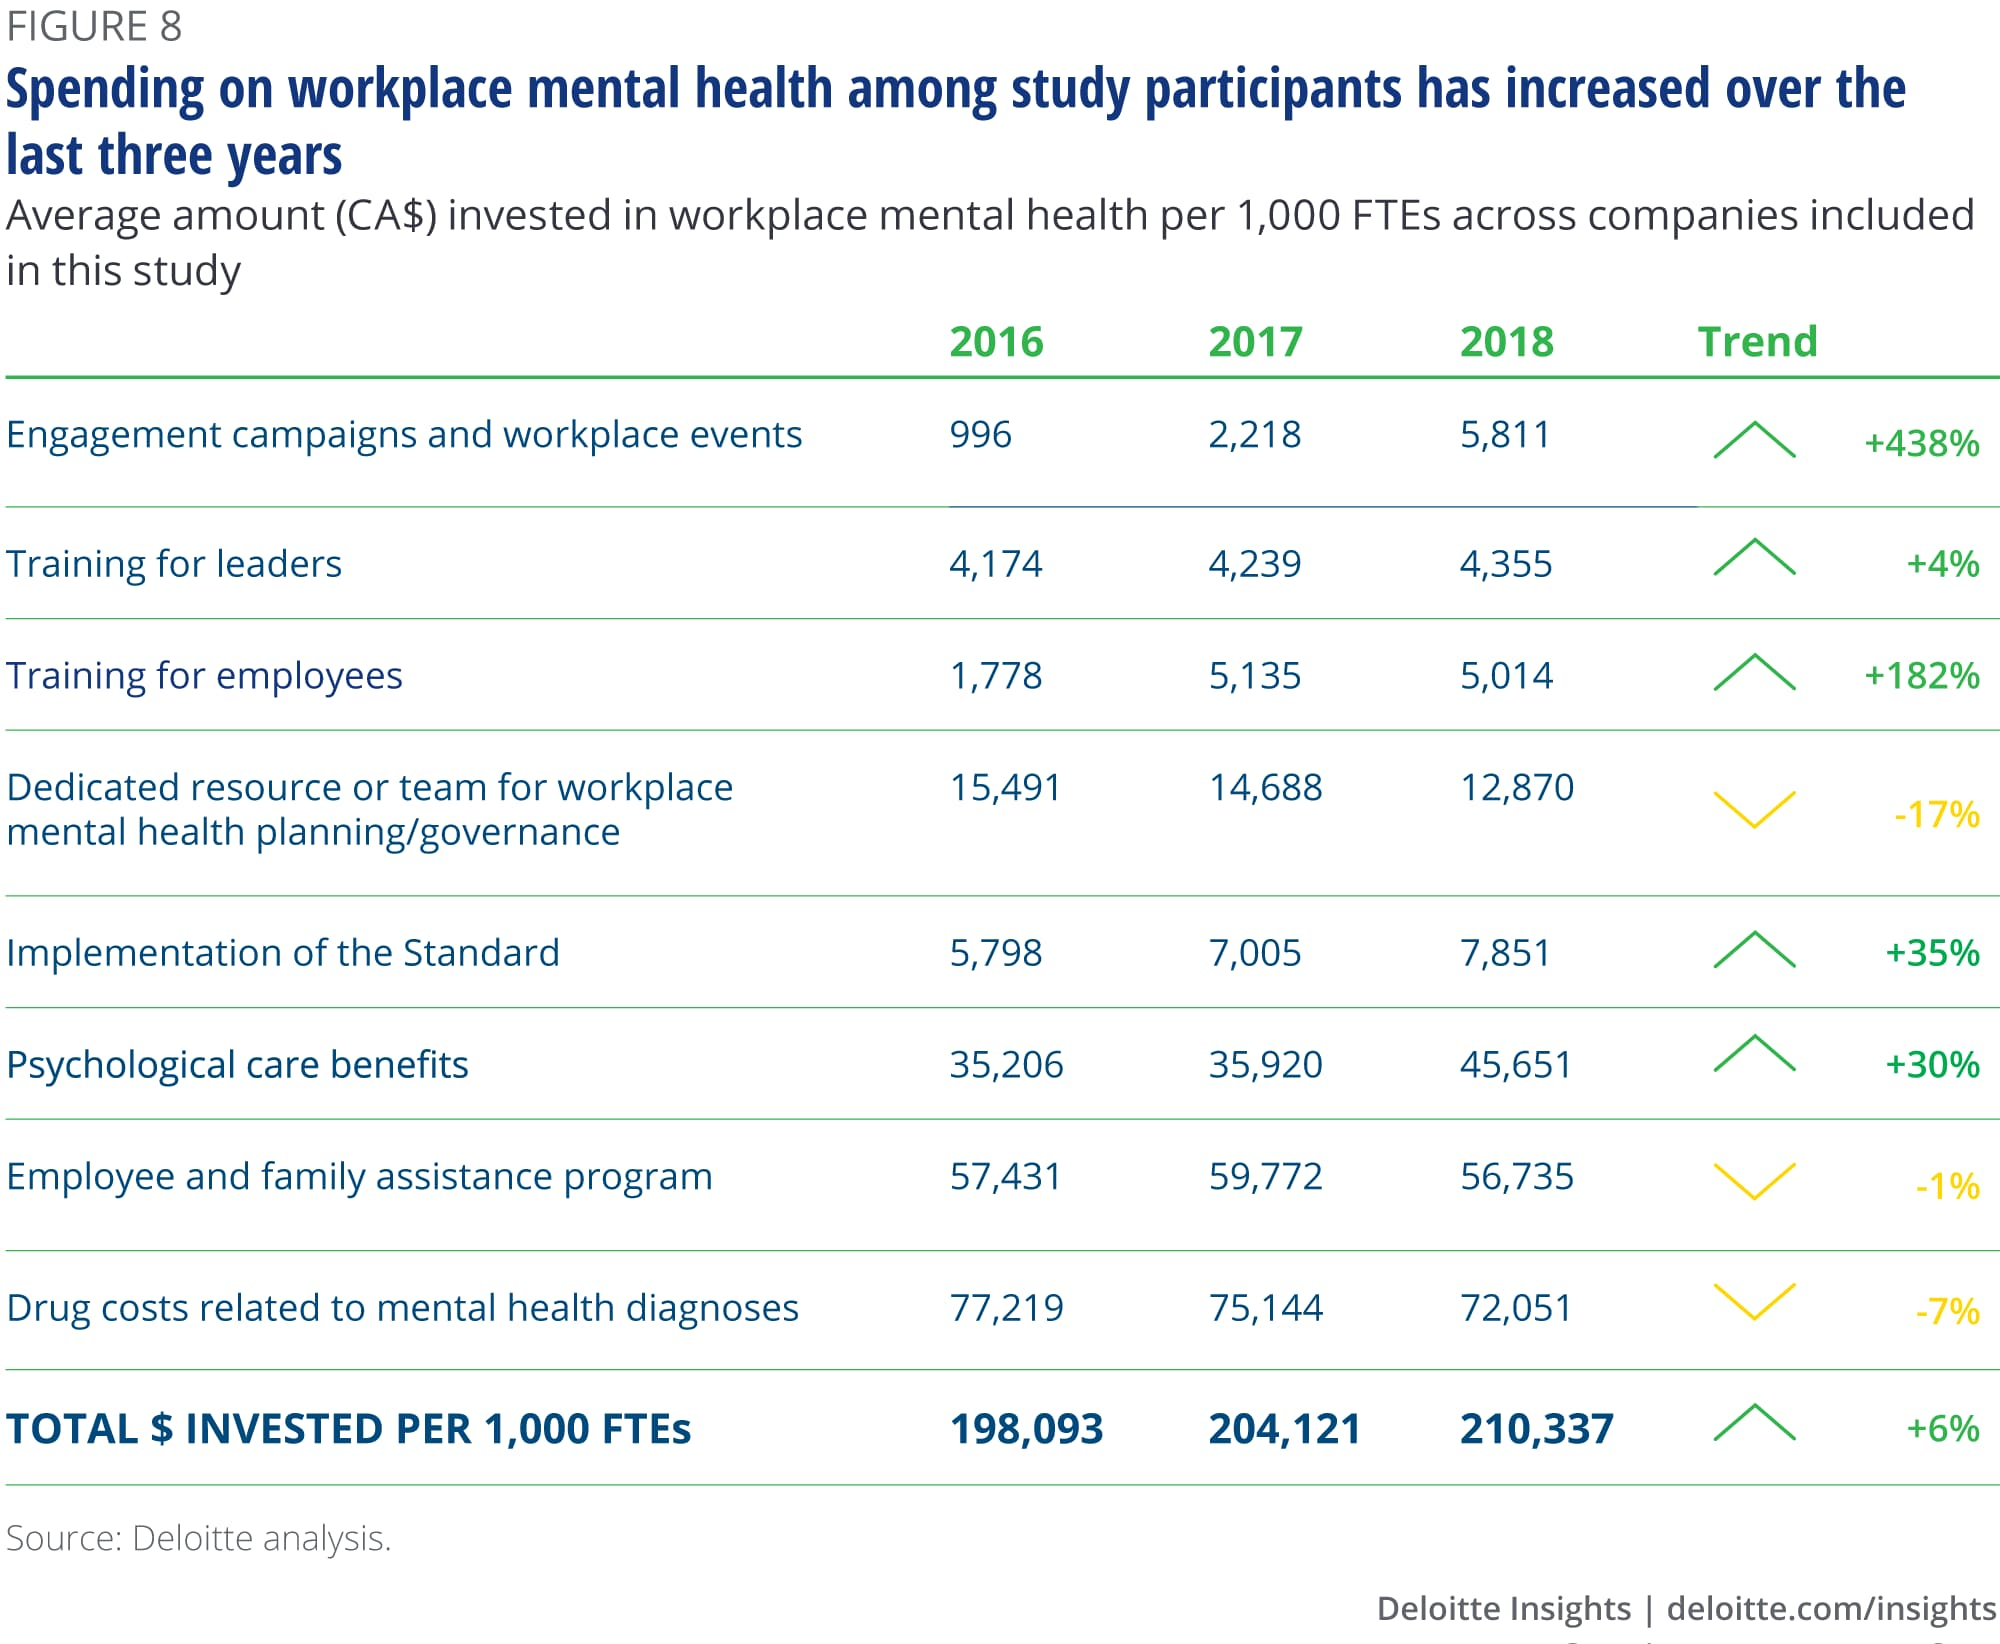 Spending on workplace mental health among study participants has increased over the last three years